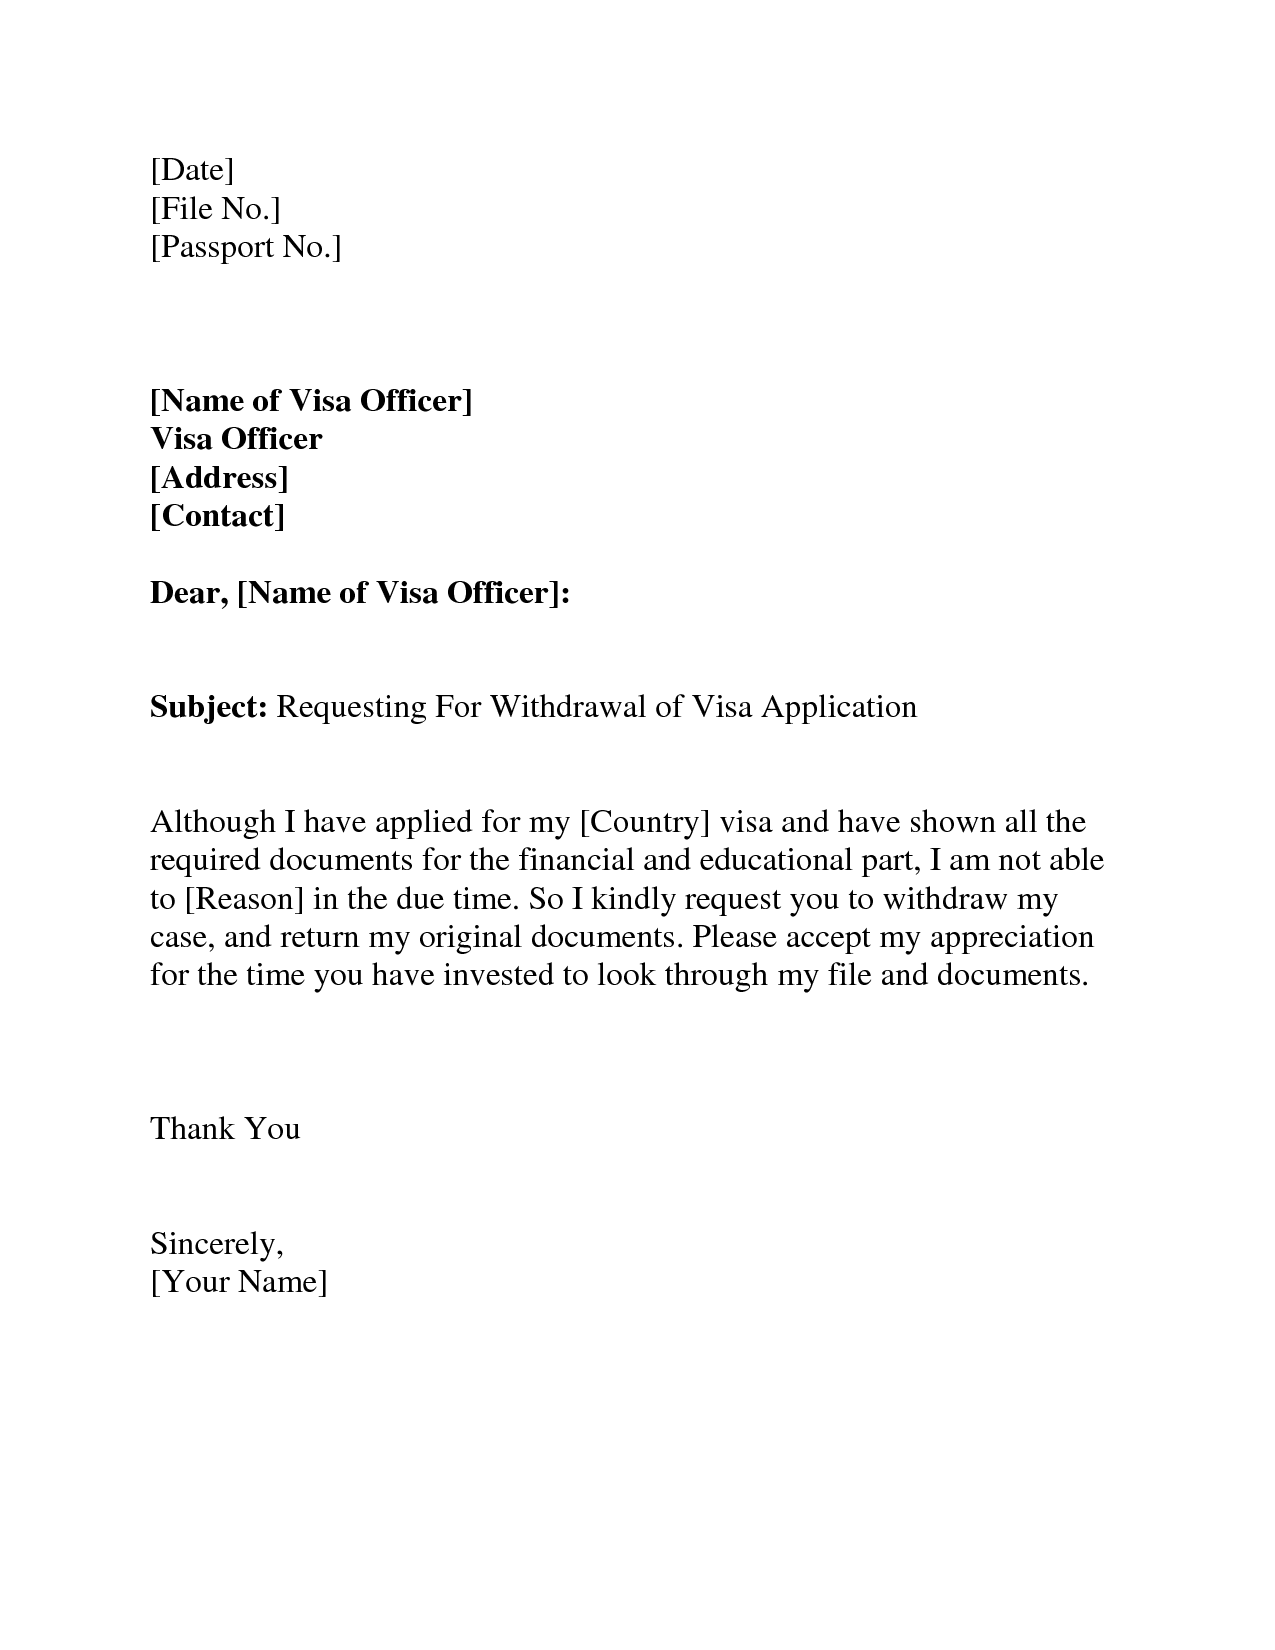 visa withdrawal letter request letter format letter and emailvisa invitation letter to a friend example application